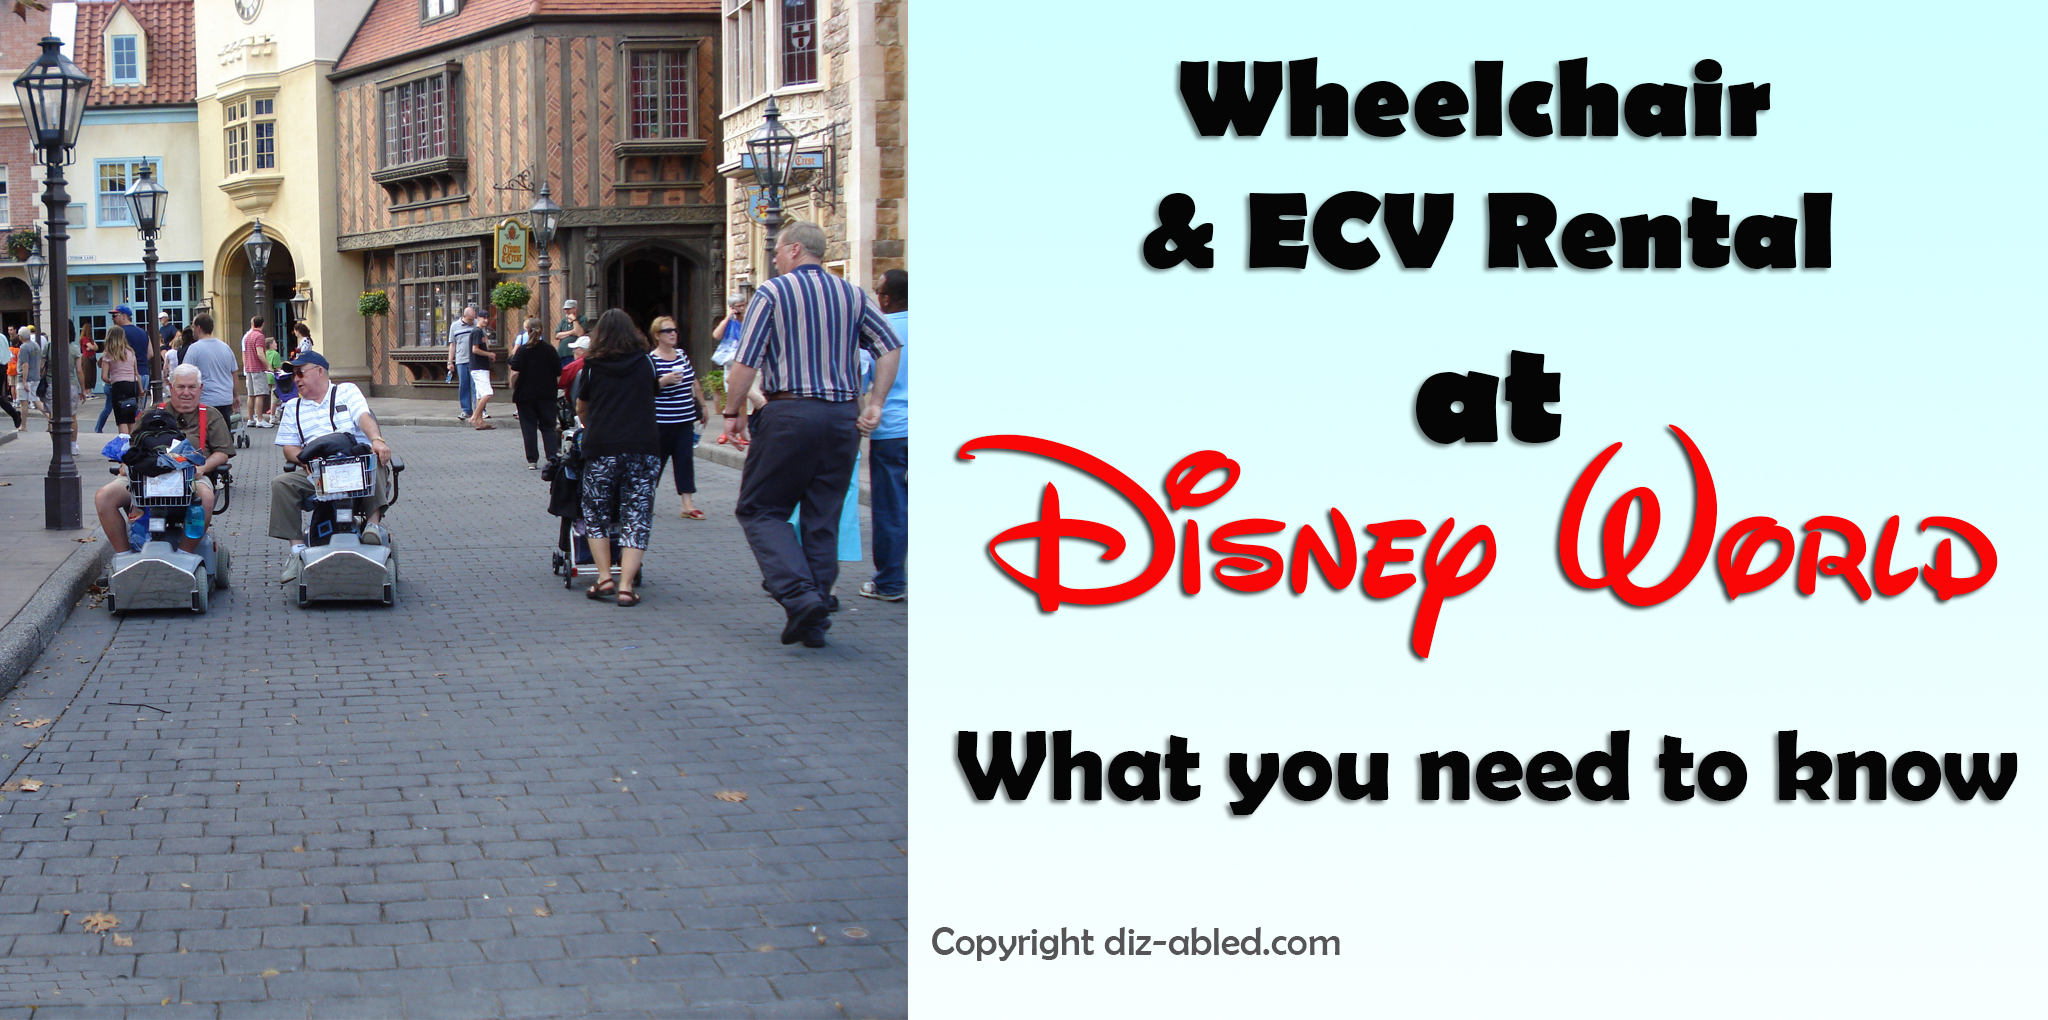 Renting Wheelchairs and ECVs Scooters From Disney World What you